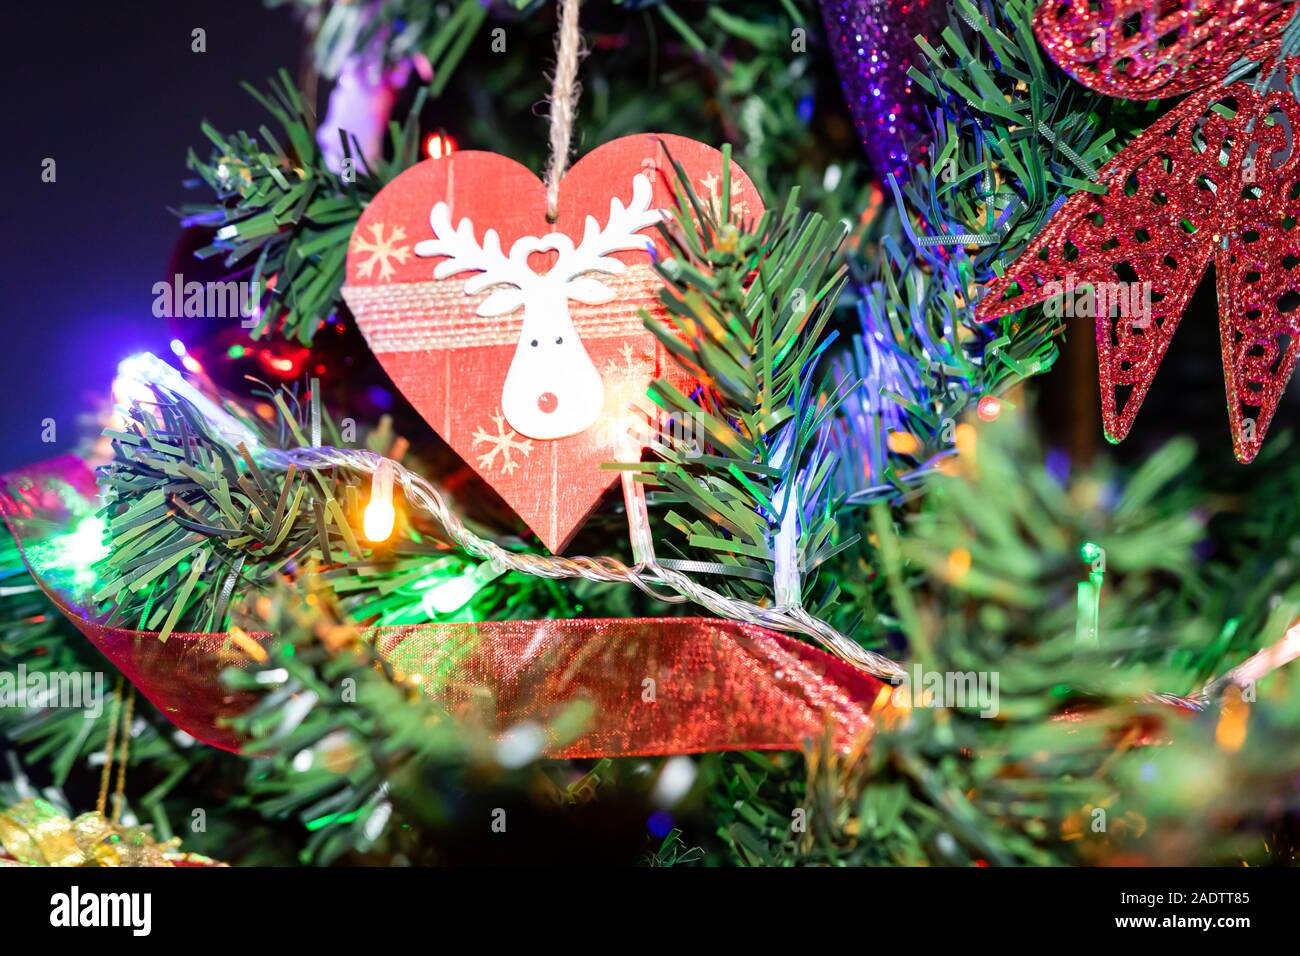 Christmas Hanging Decorations On Fir Tree Decorated Christmas Tree Fir Branch With Christmas Decorations Surrounded By Lights And Garlands Stock Photo Alamy